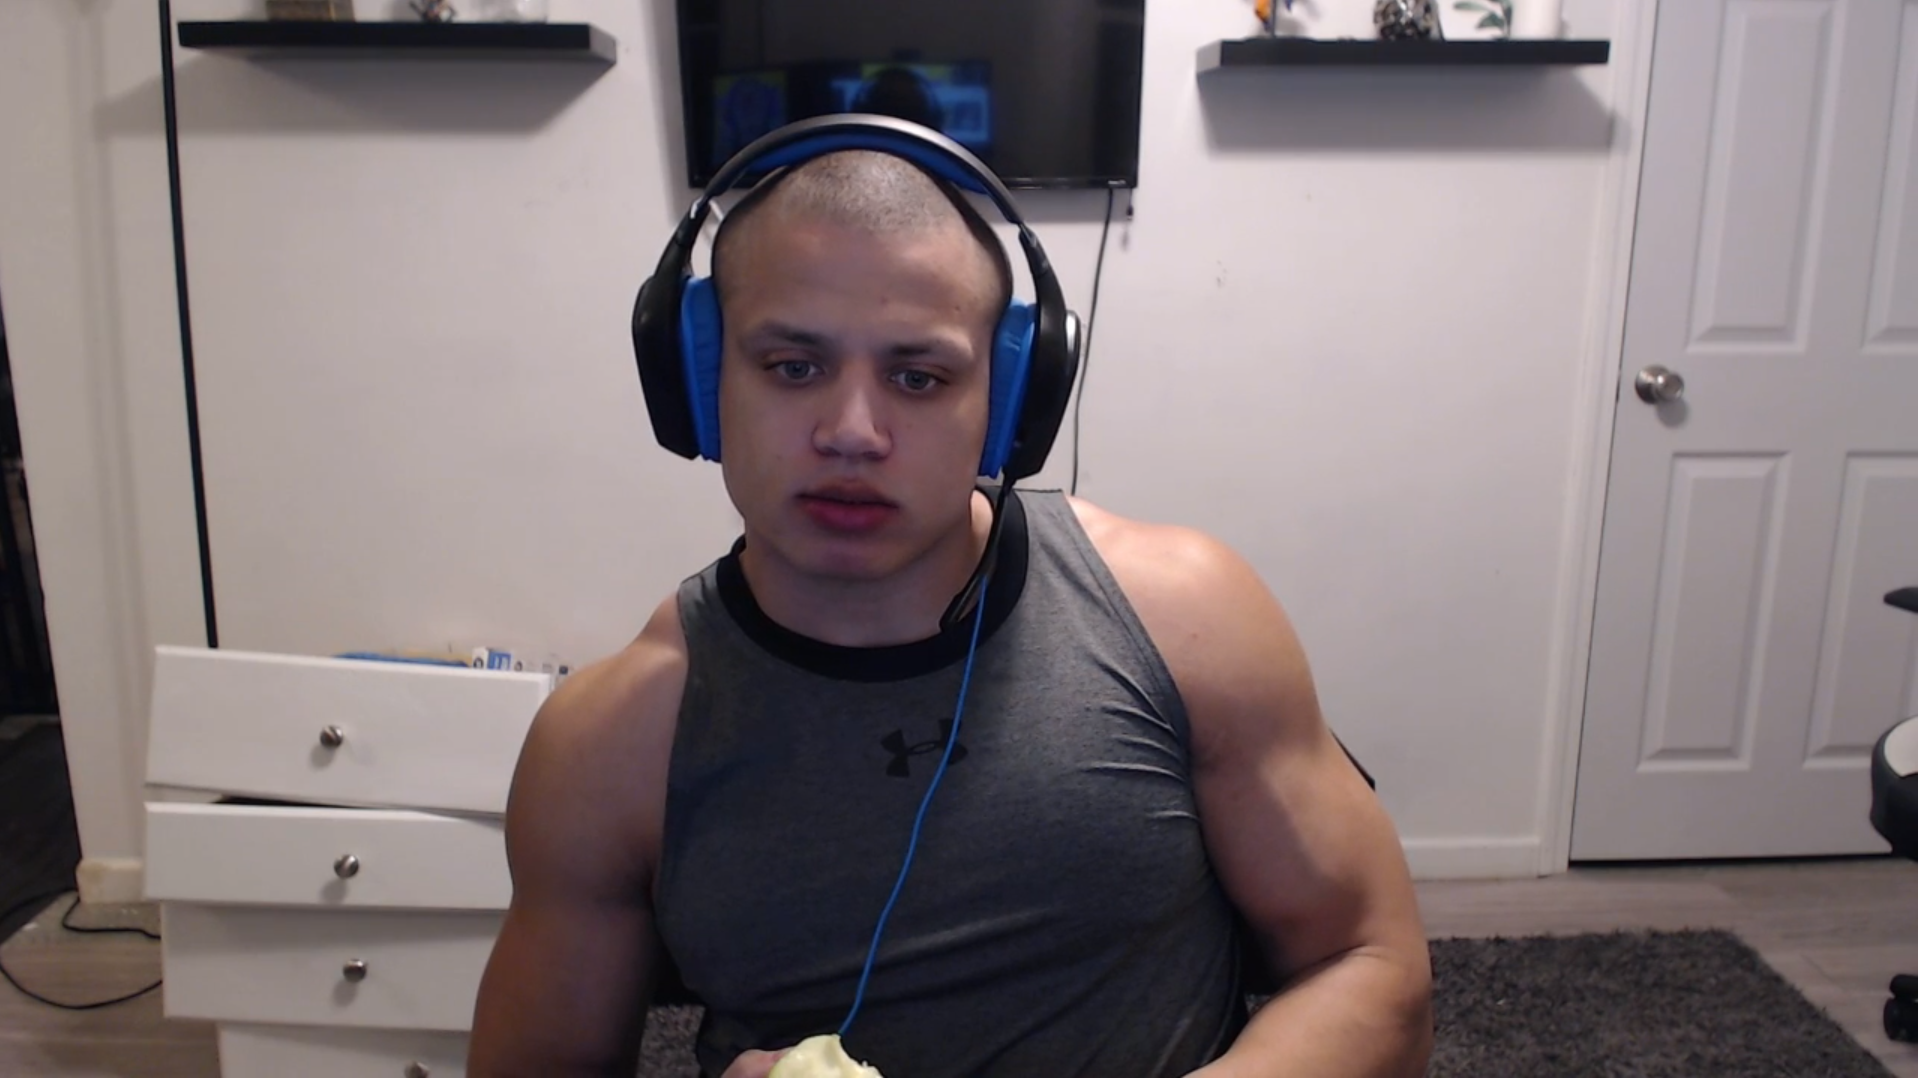 73bb5dc4098 Tyler1 loses $10,000 bet to Yassuo | Dot Esports